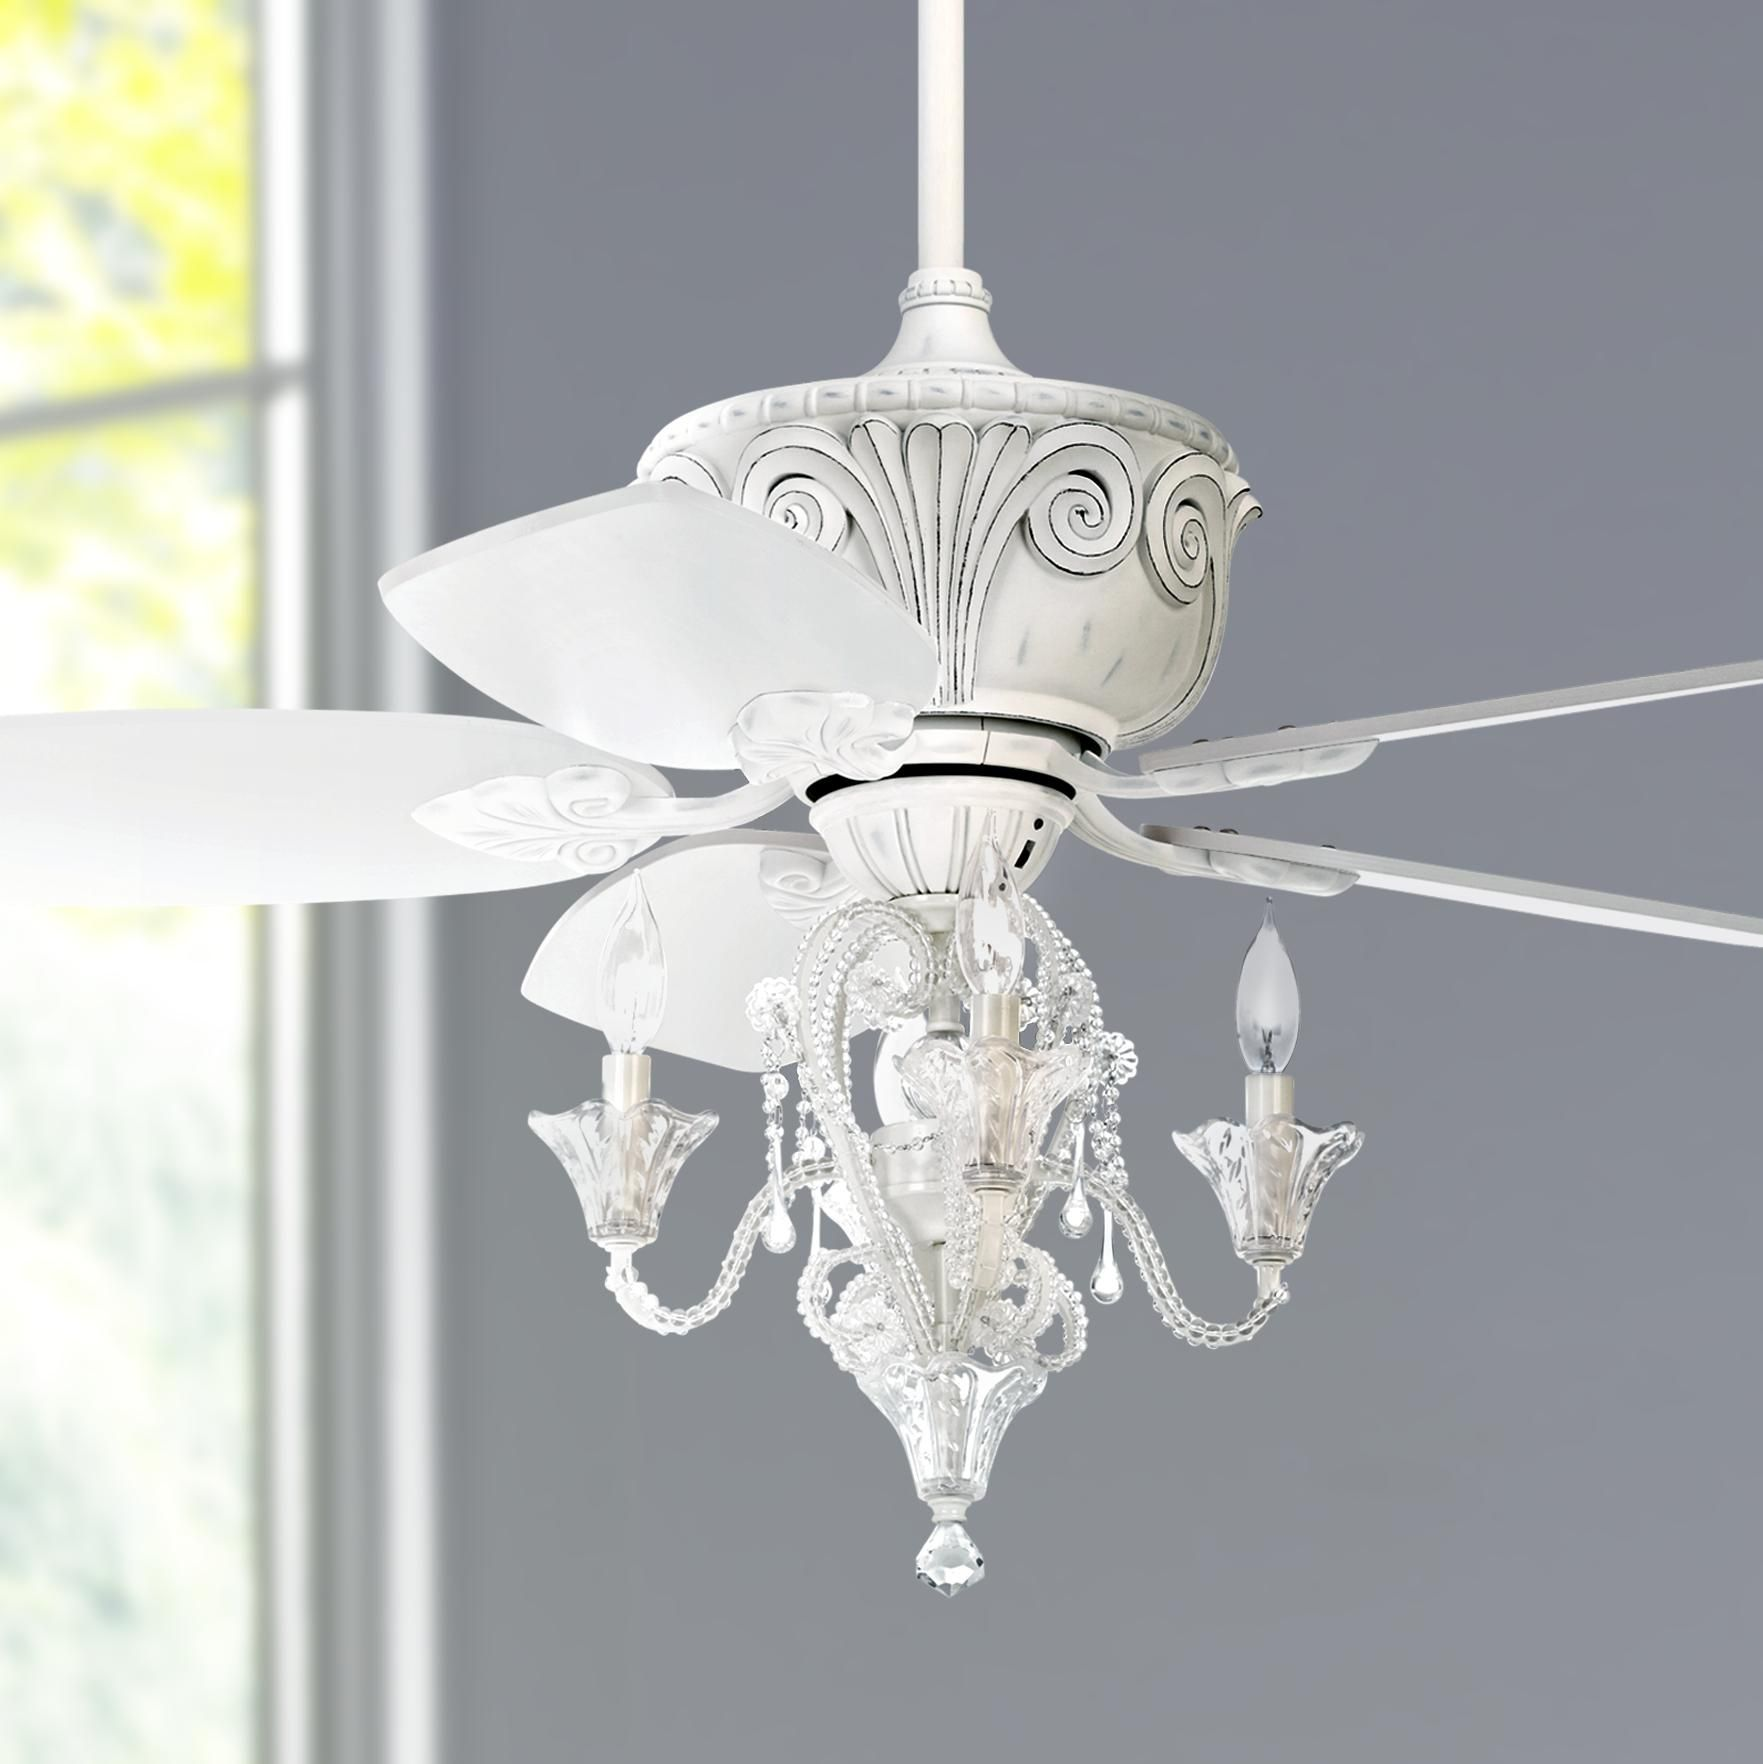 Vintage White Ceiling Fan